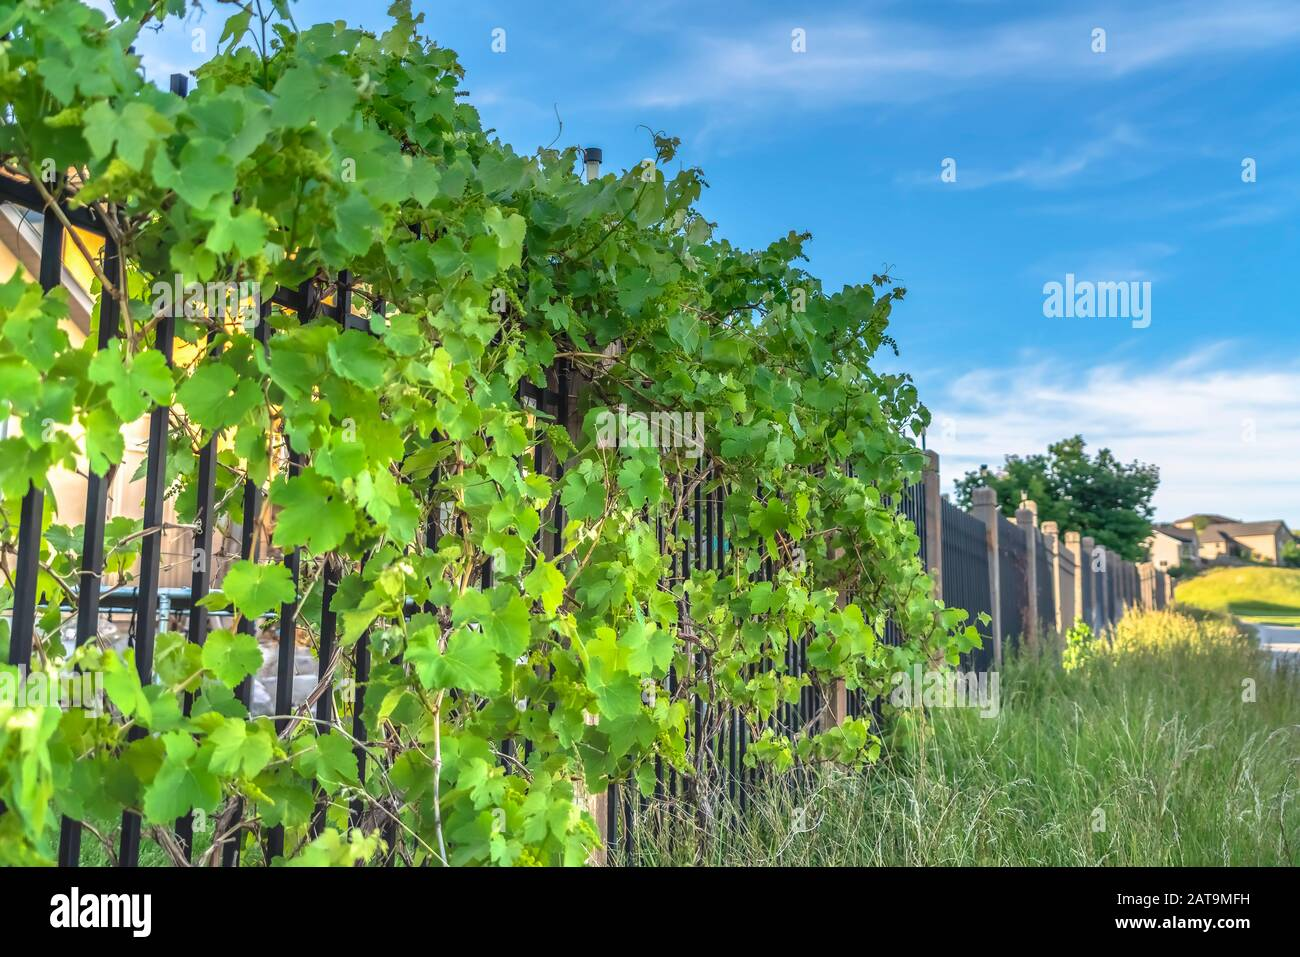 Lush Vines With Vibrant Green Leaves Growing On The Black Metal Fence Of Homes Stock Photo Alamy